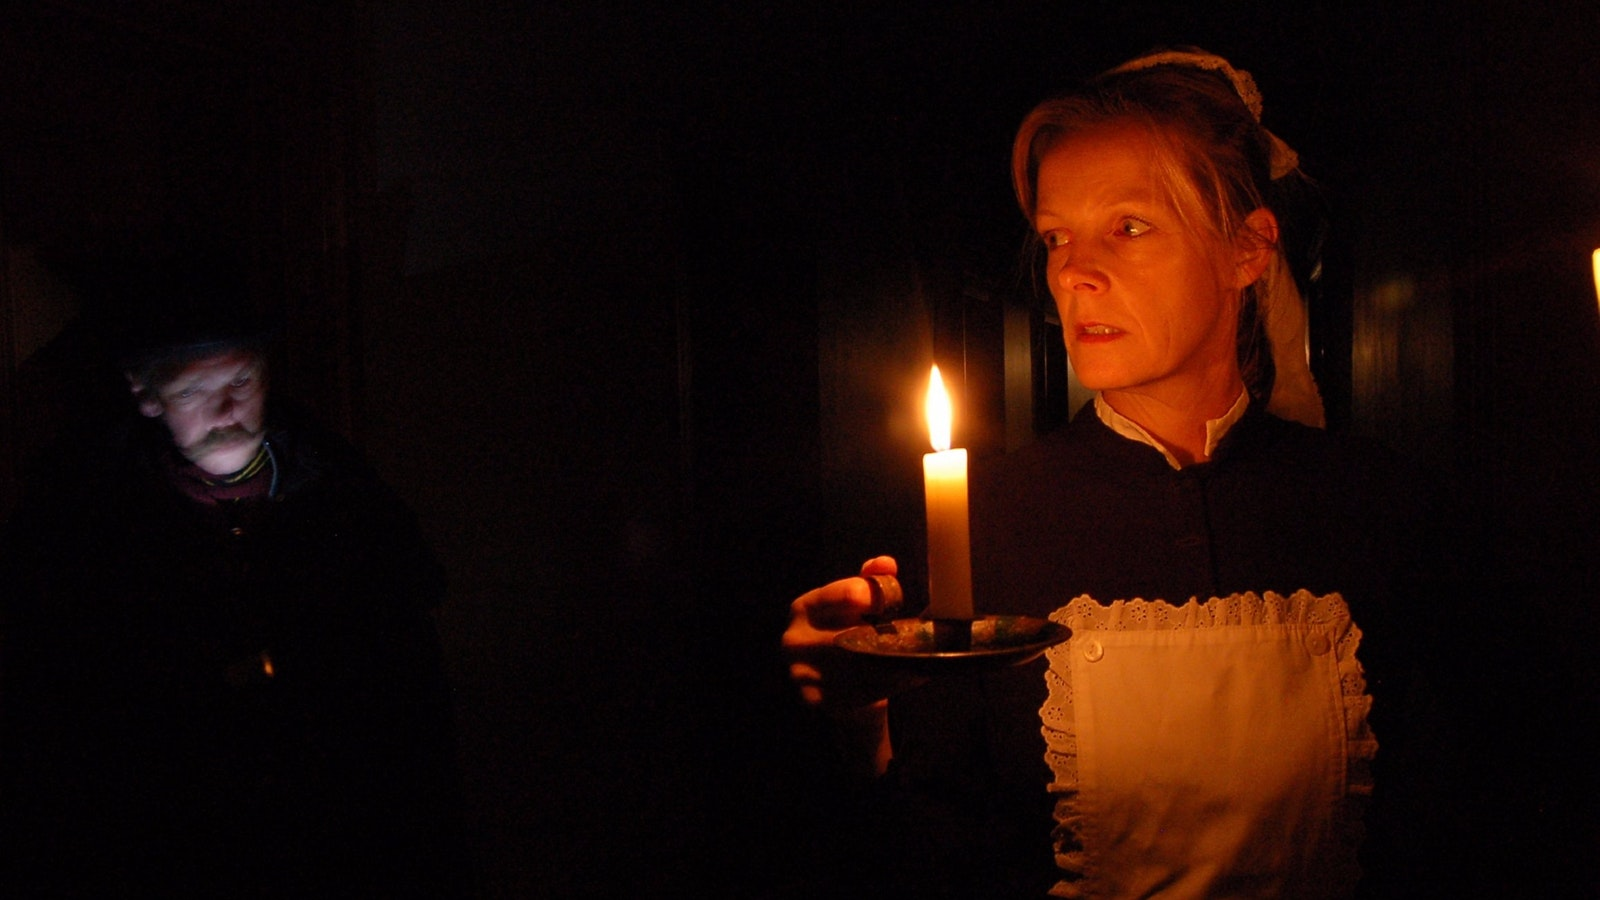 Maggie with candle